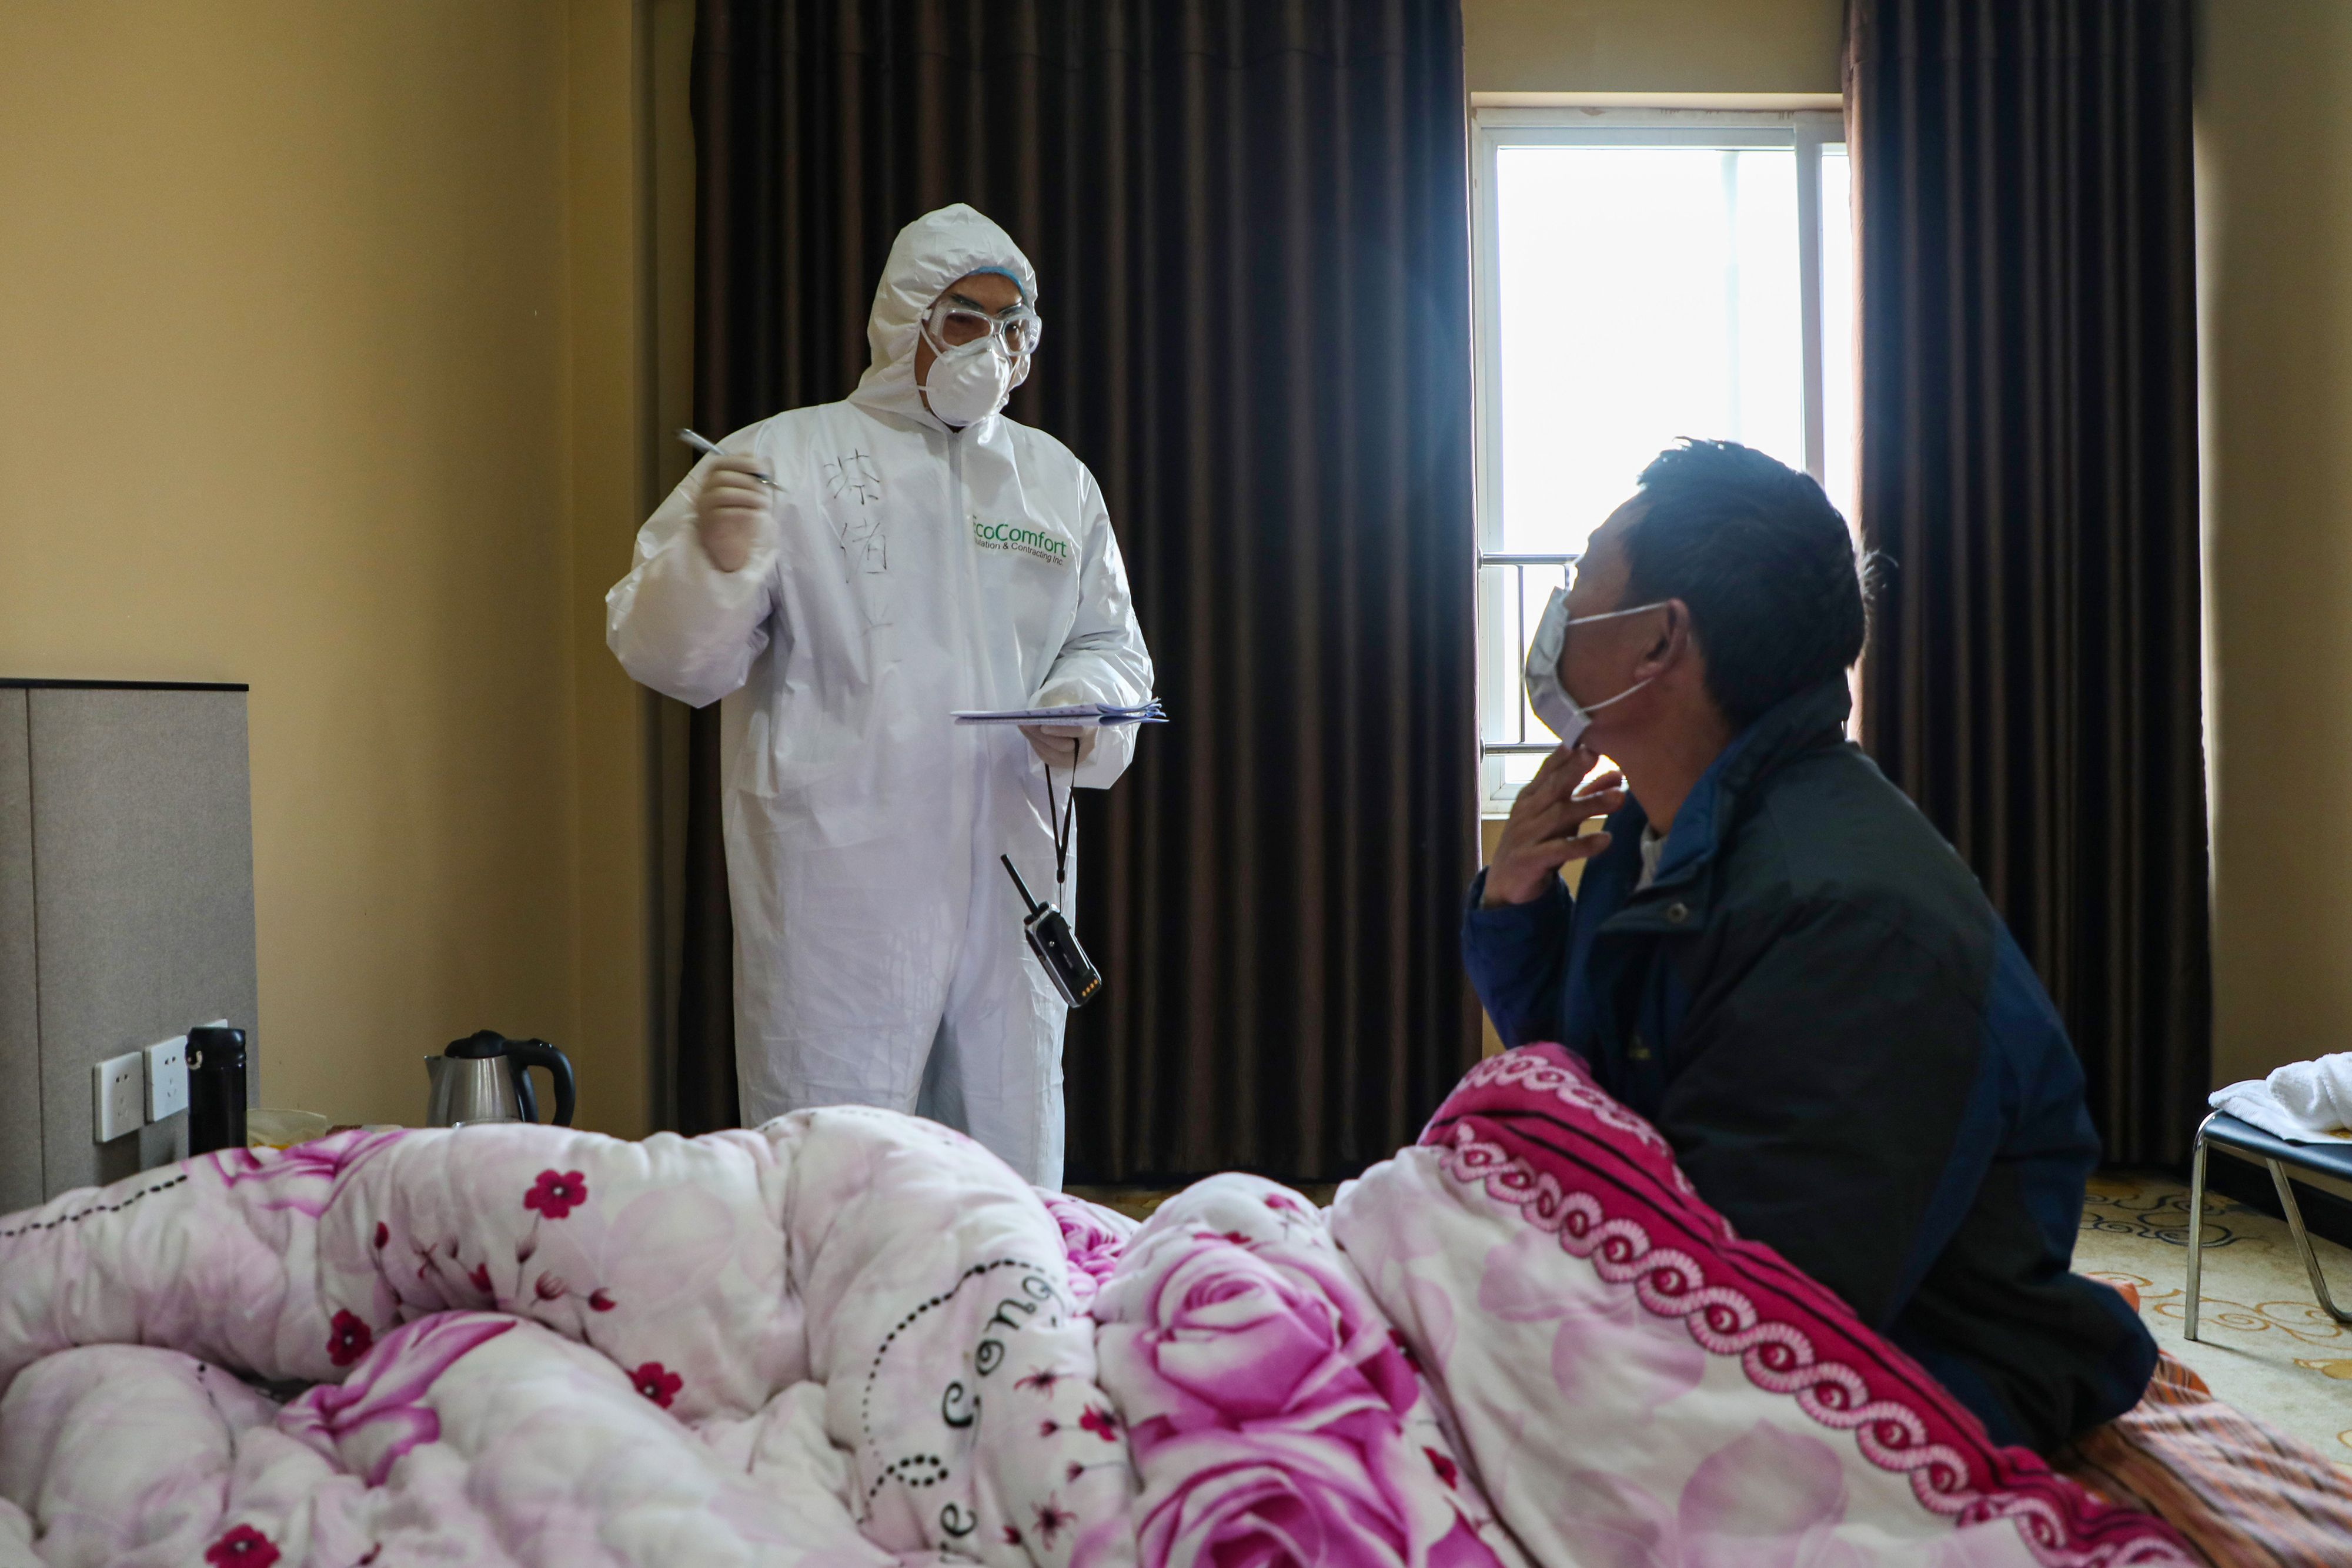 Chinese doctor Li Wenliang, detained for coronavirus warning, now ...